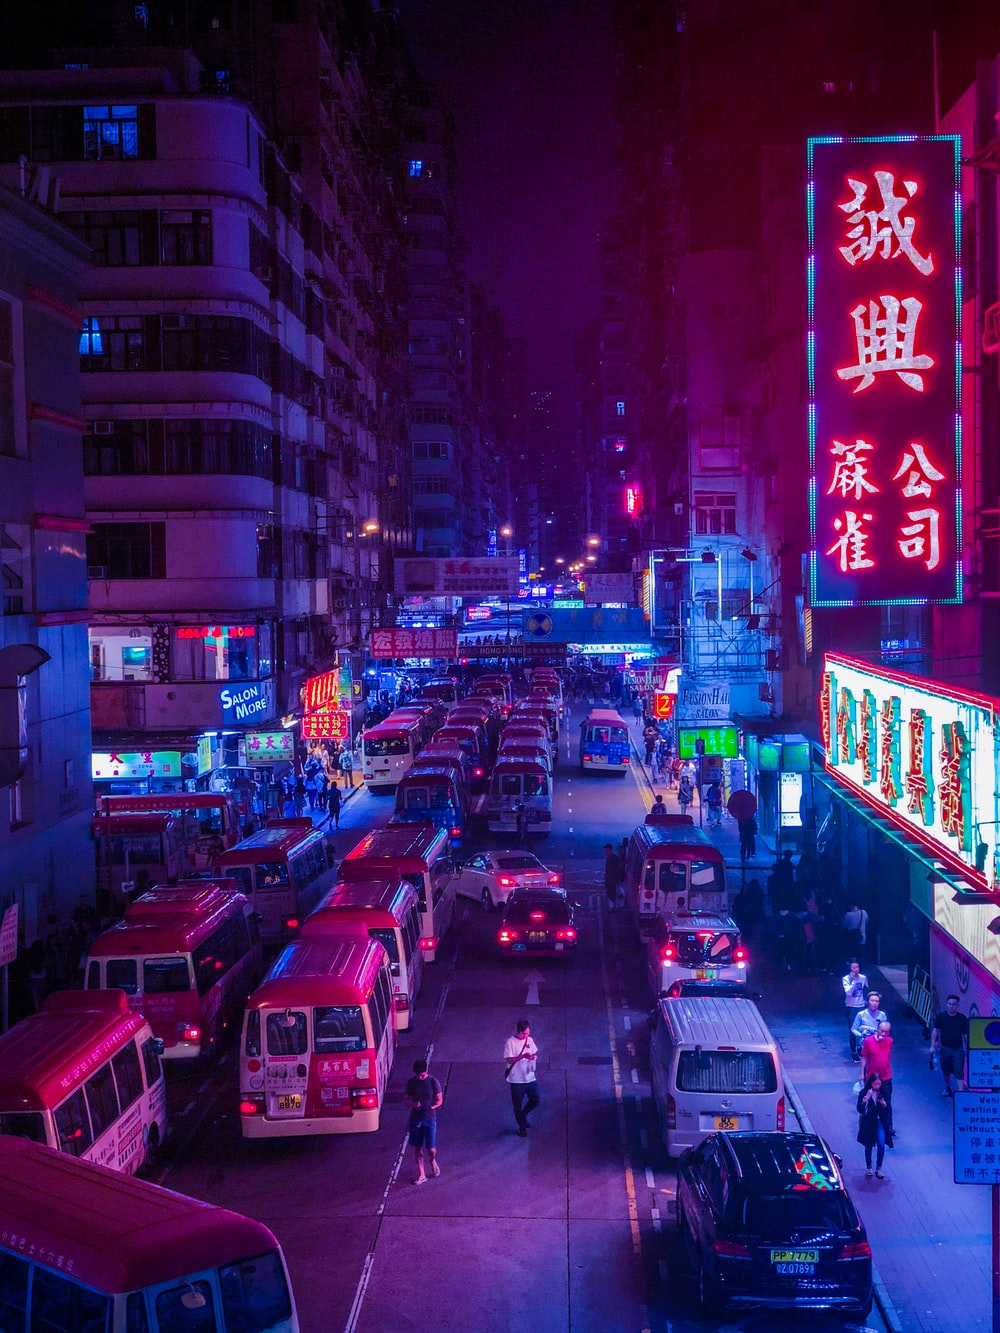 cars on road surrounded by buildings during night time